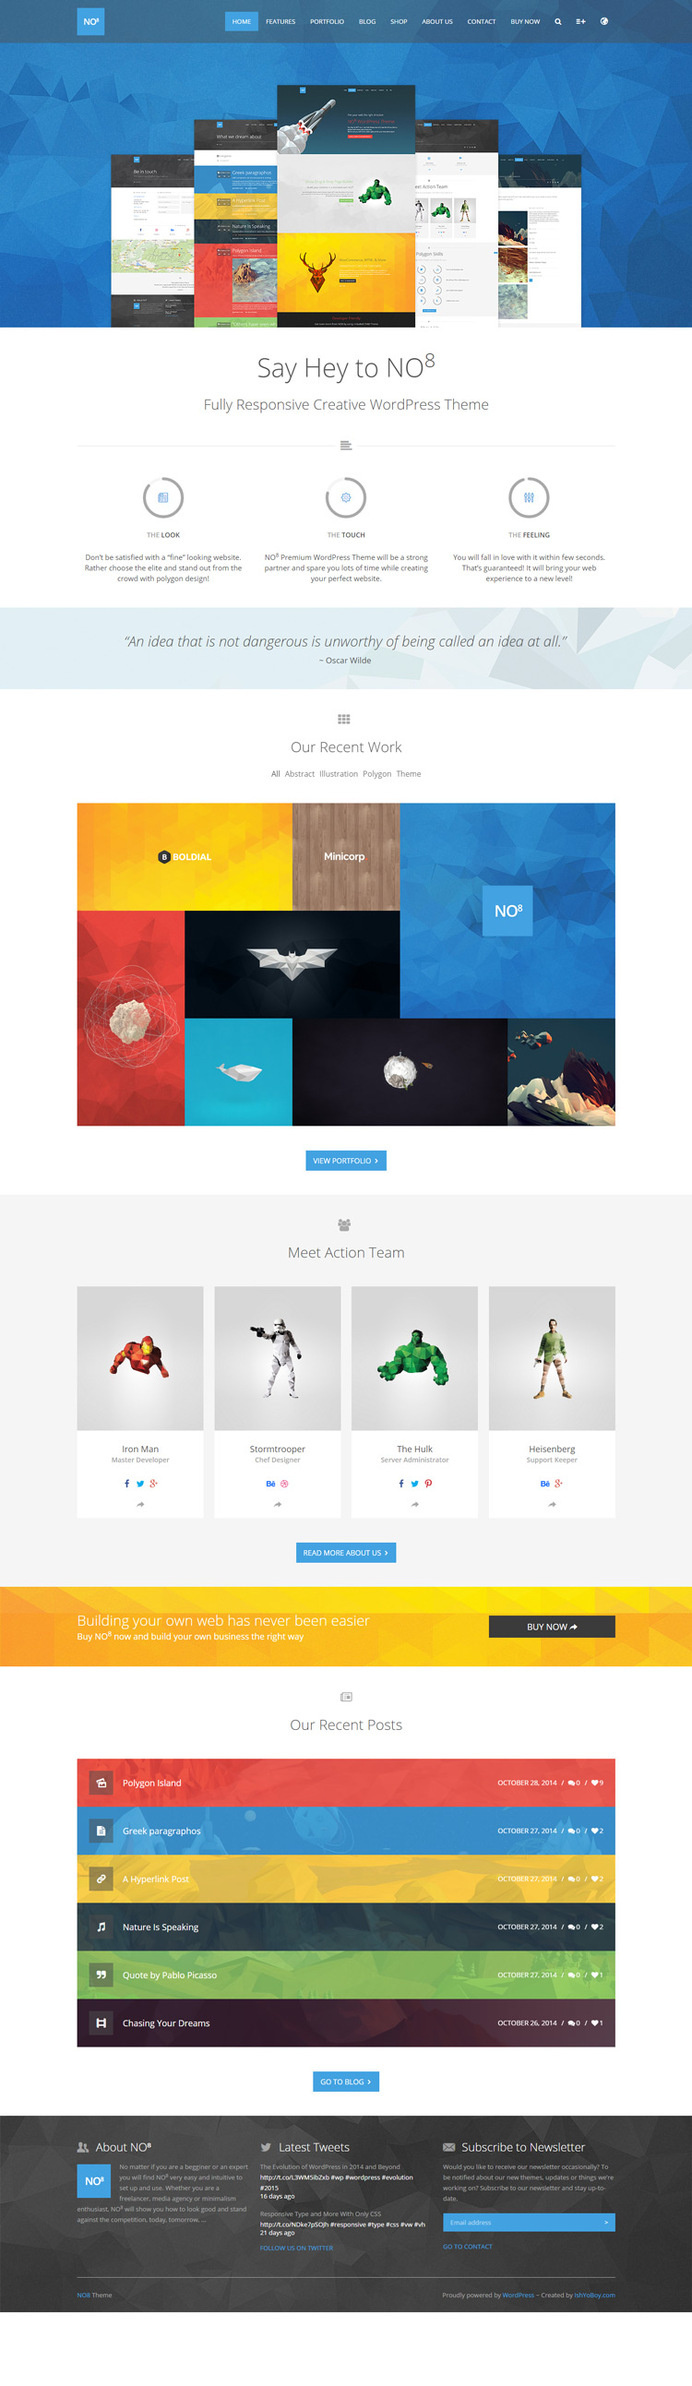 yellow, blue, concept, layout, visual, web design #visual #yellow #design #concept #blue #layout #web